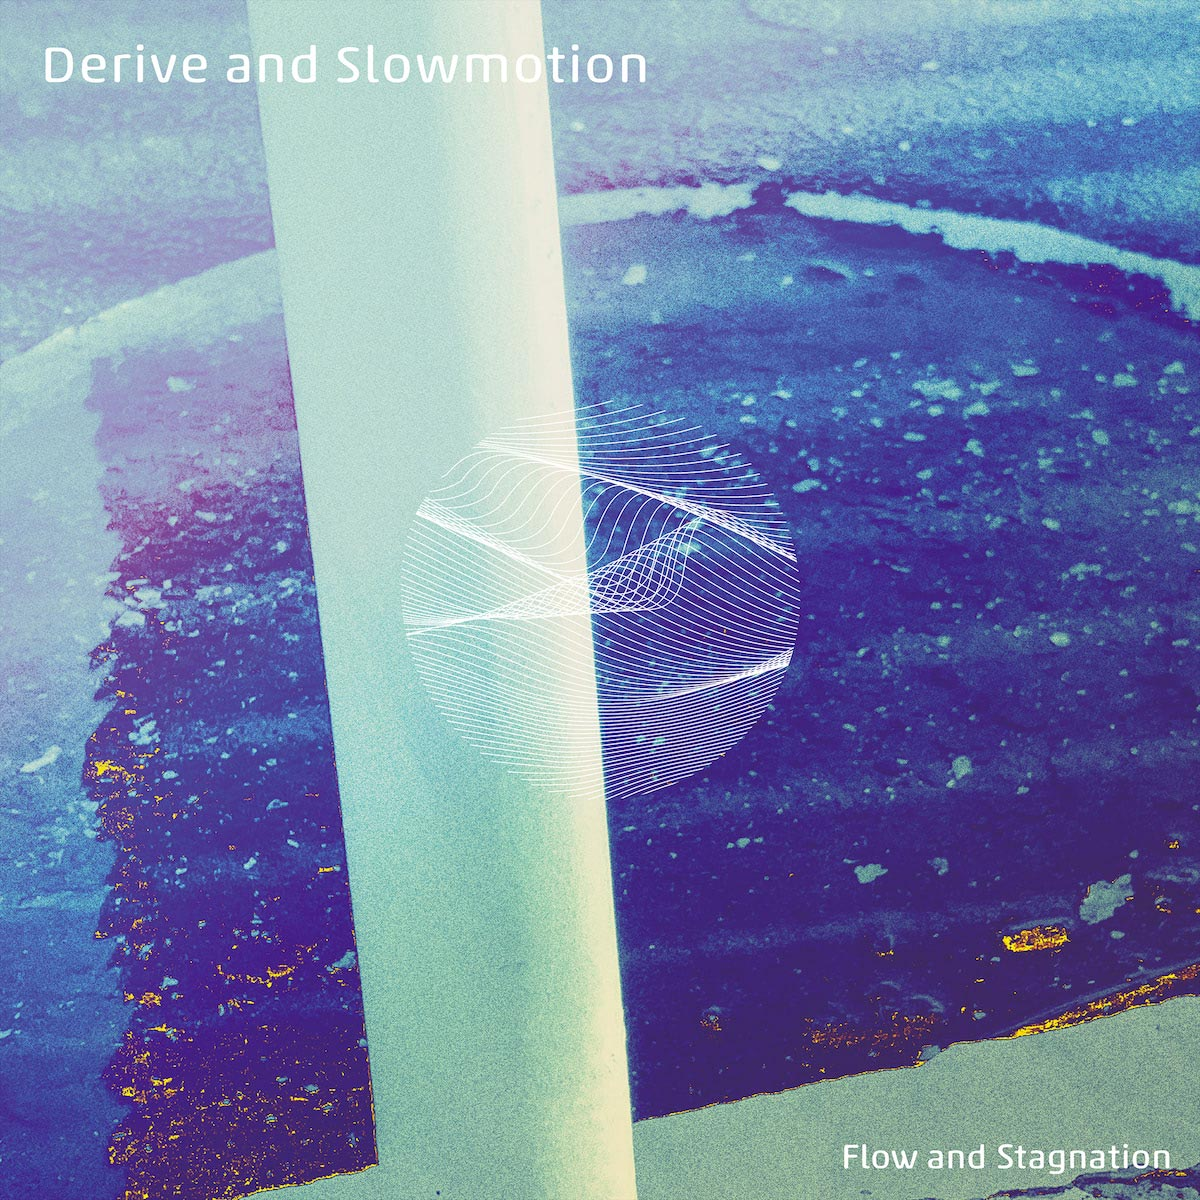 Derive and Slowmotion